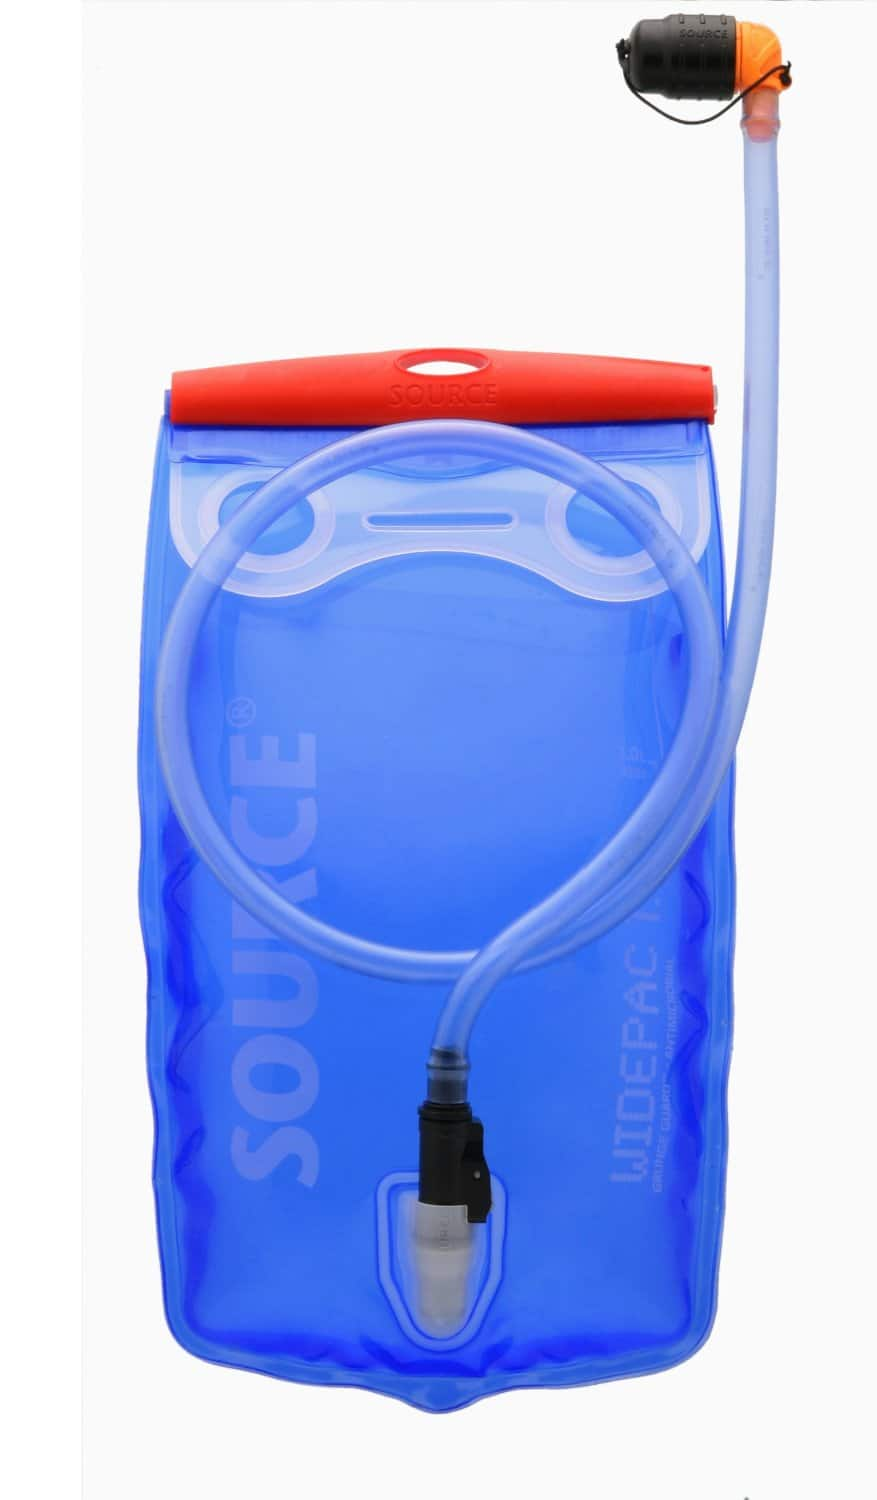 Source Outdoor Widepac Hydration System Reservoir with Helix Bite Valve 3L $13.42 (FS with prime)